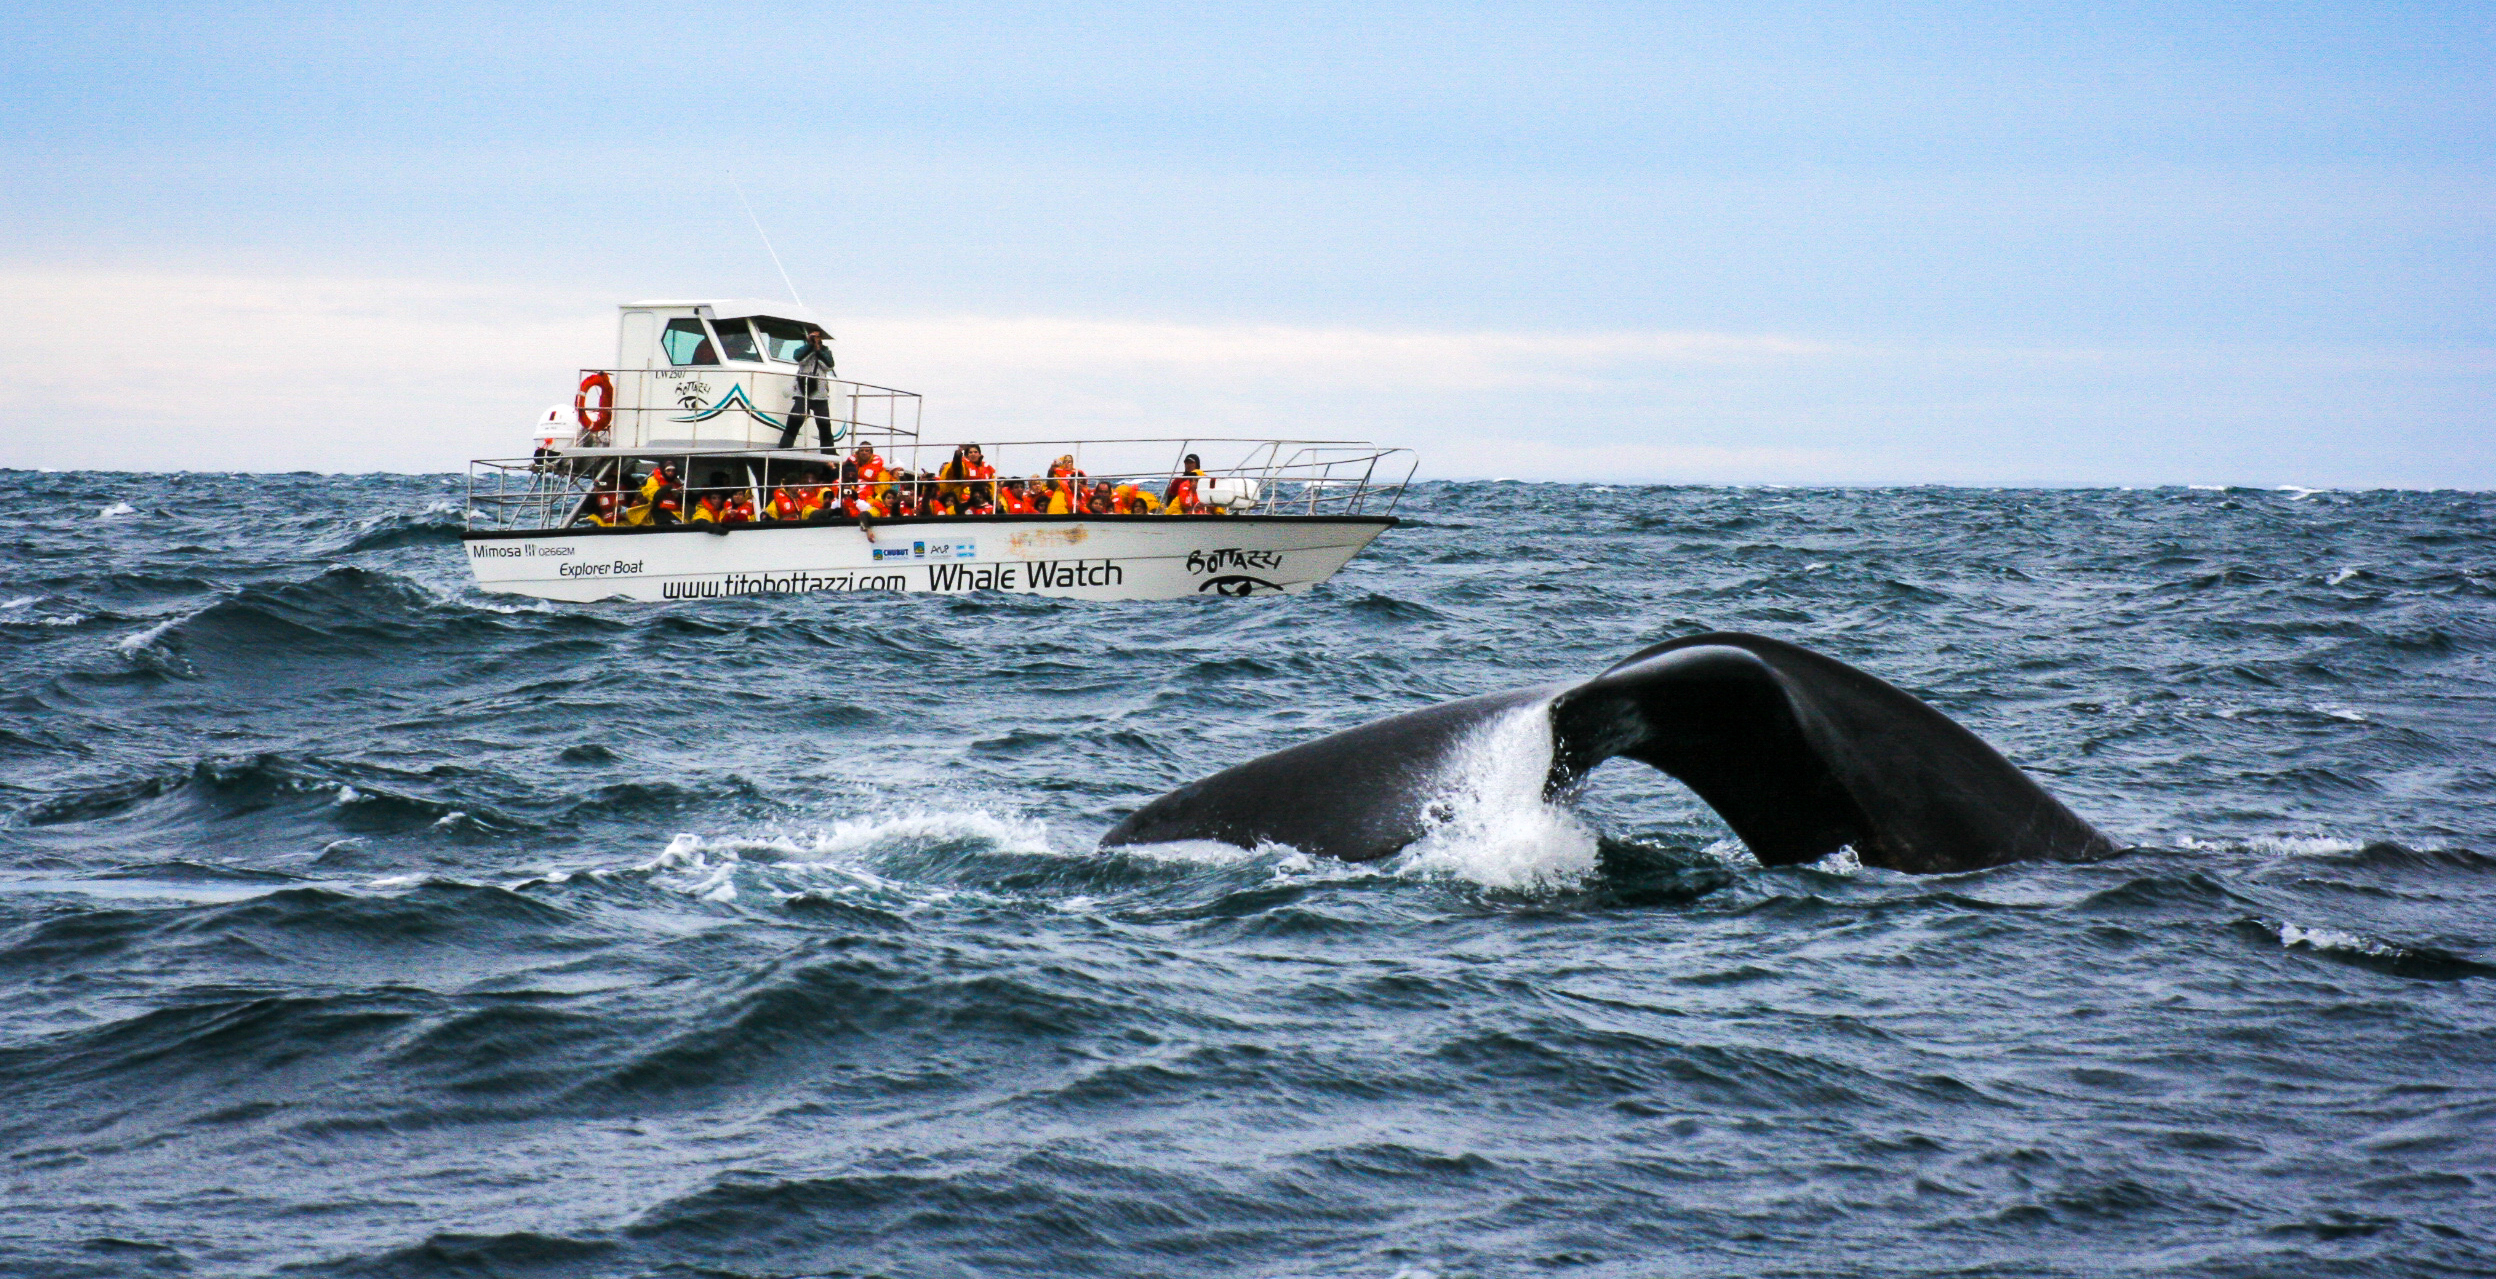 Good reasons to not kill whales